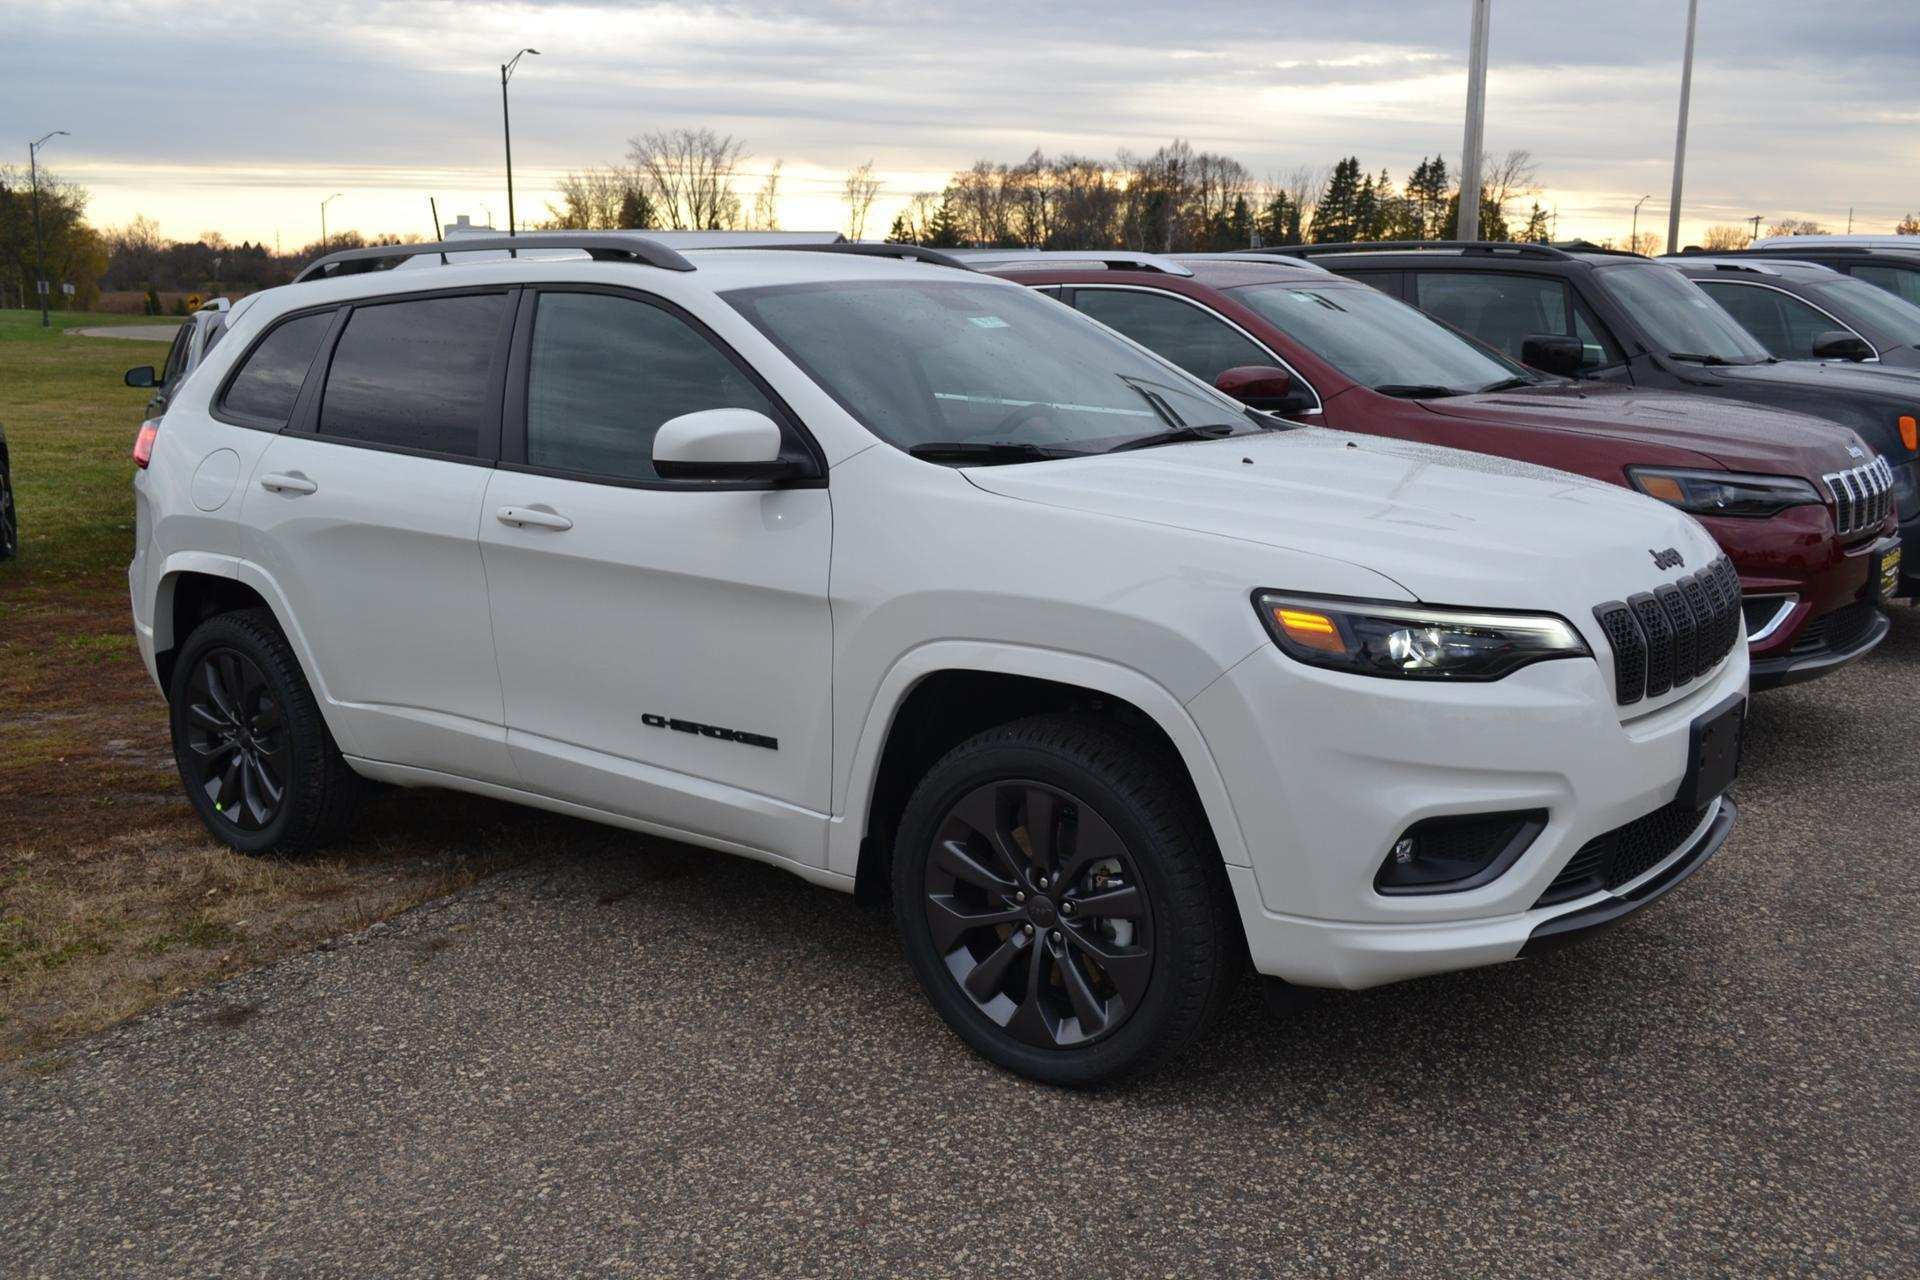 60 Best Review 2019 Jeep High Altitude Reviews with 2019 Jeep High Altitude